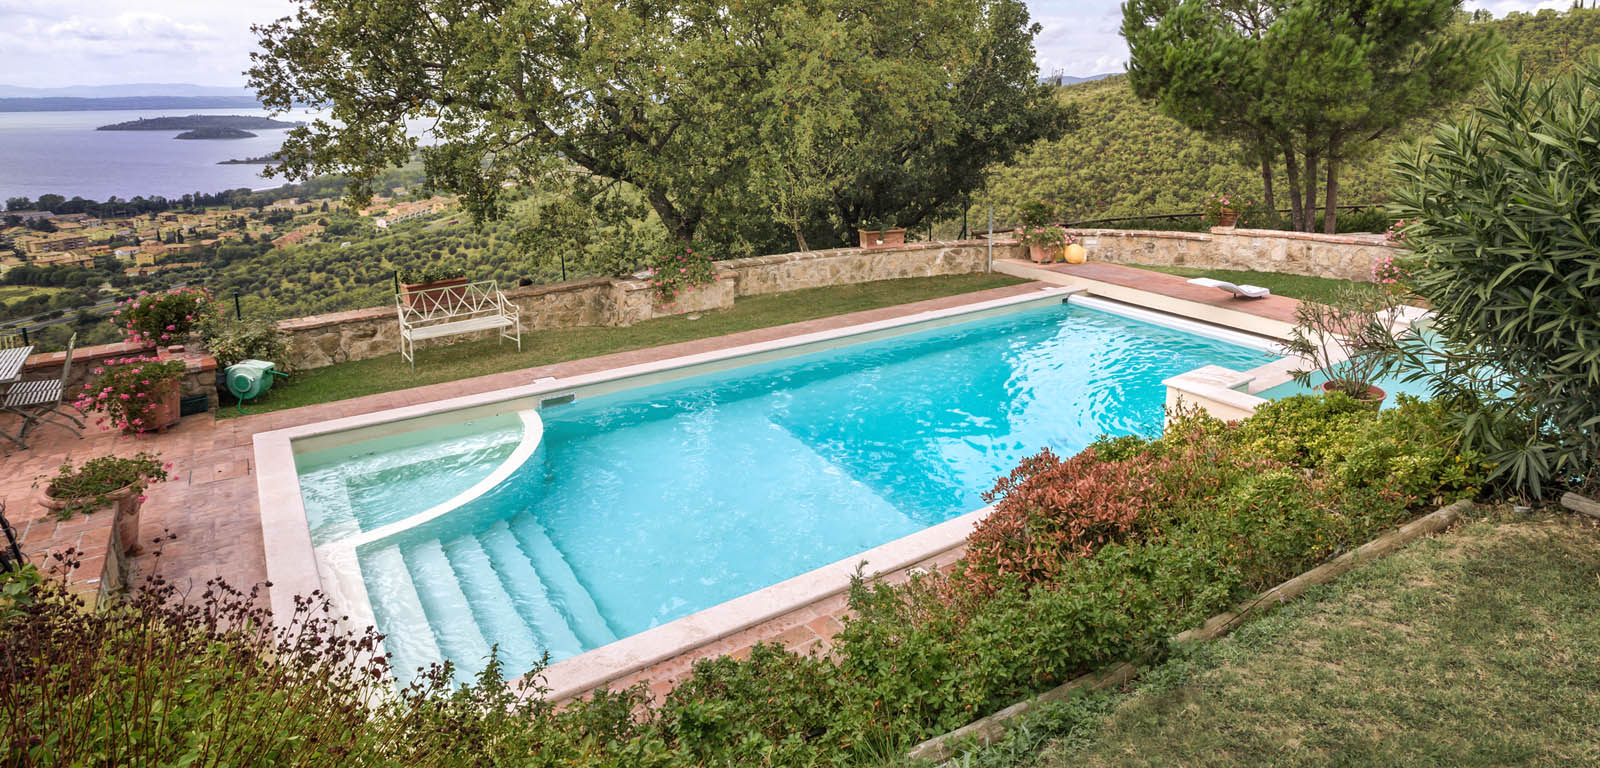 Piccole piscine interrate da giardino vd18 regardsdefemmes for Piscine da giardino interrate